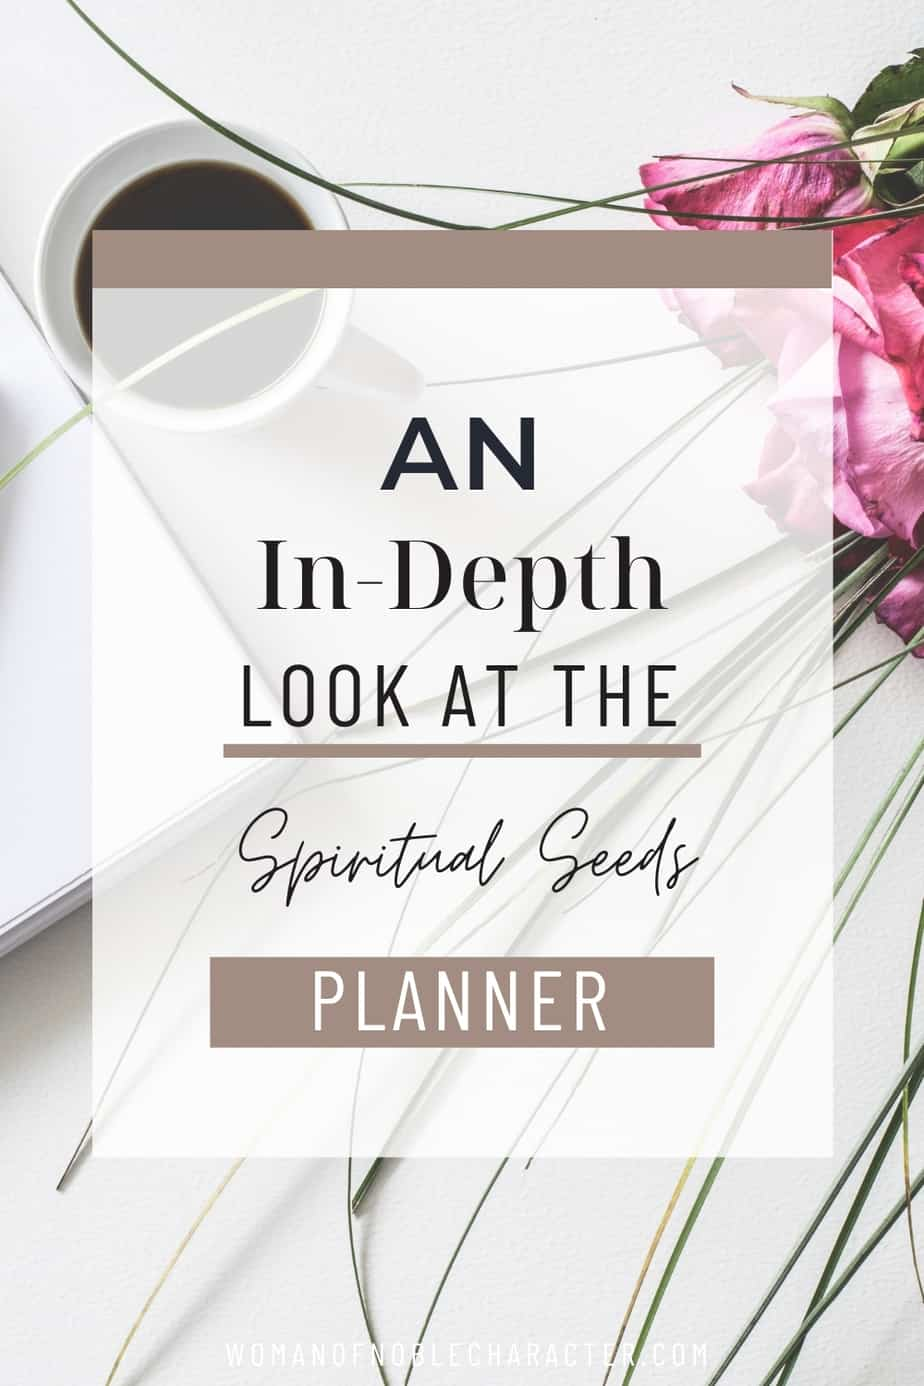 An image of a coffee cup, flowers, and a planner with an overlay of text that says,